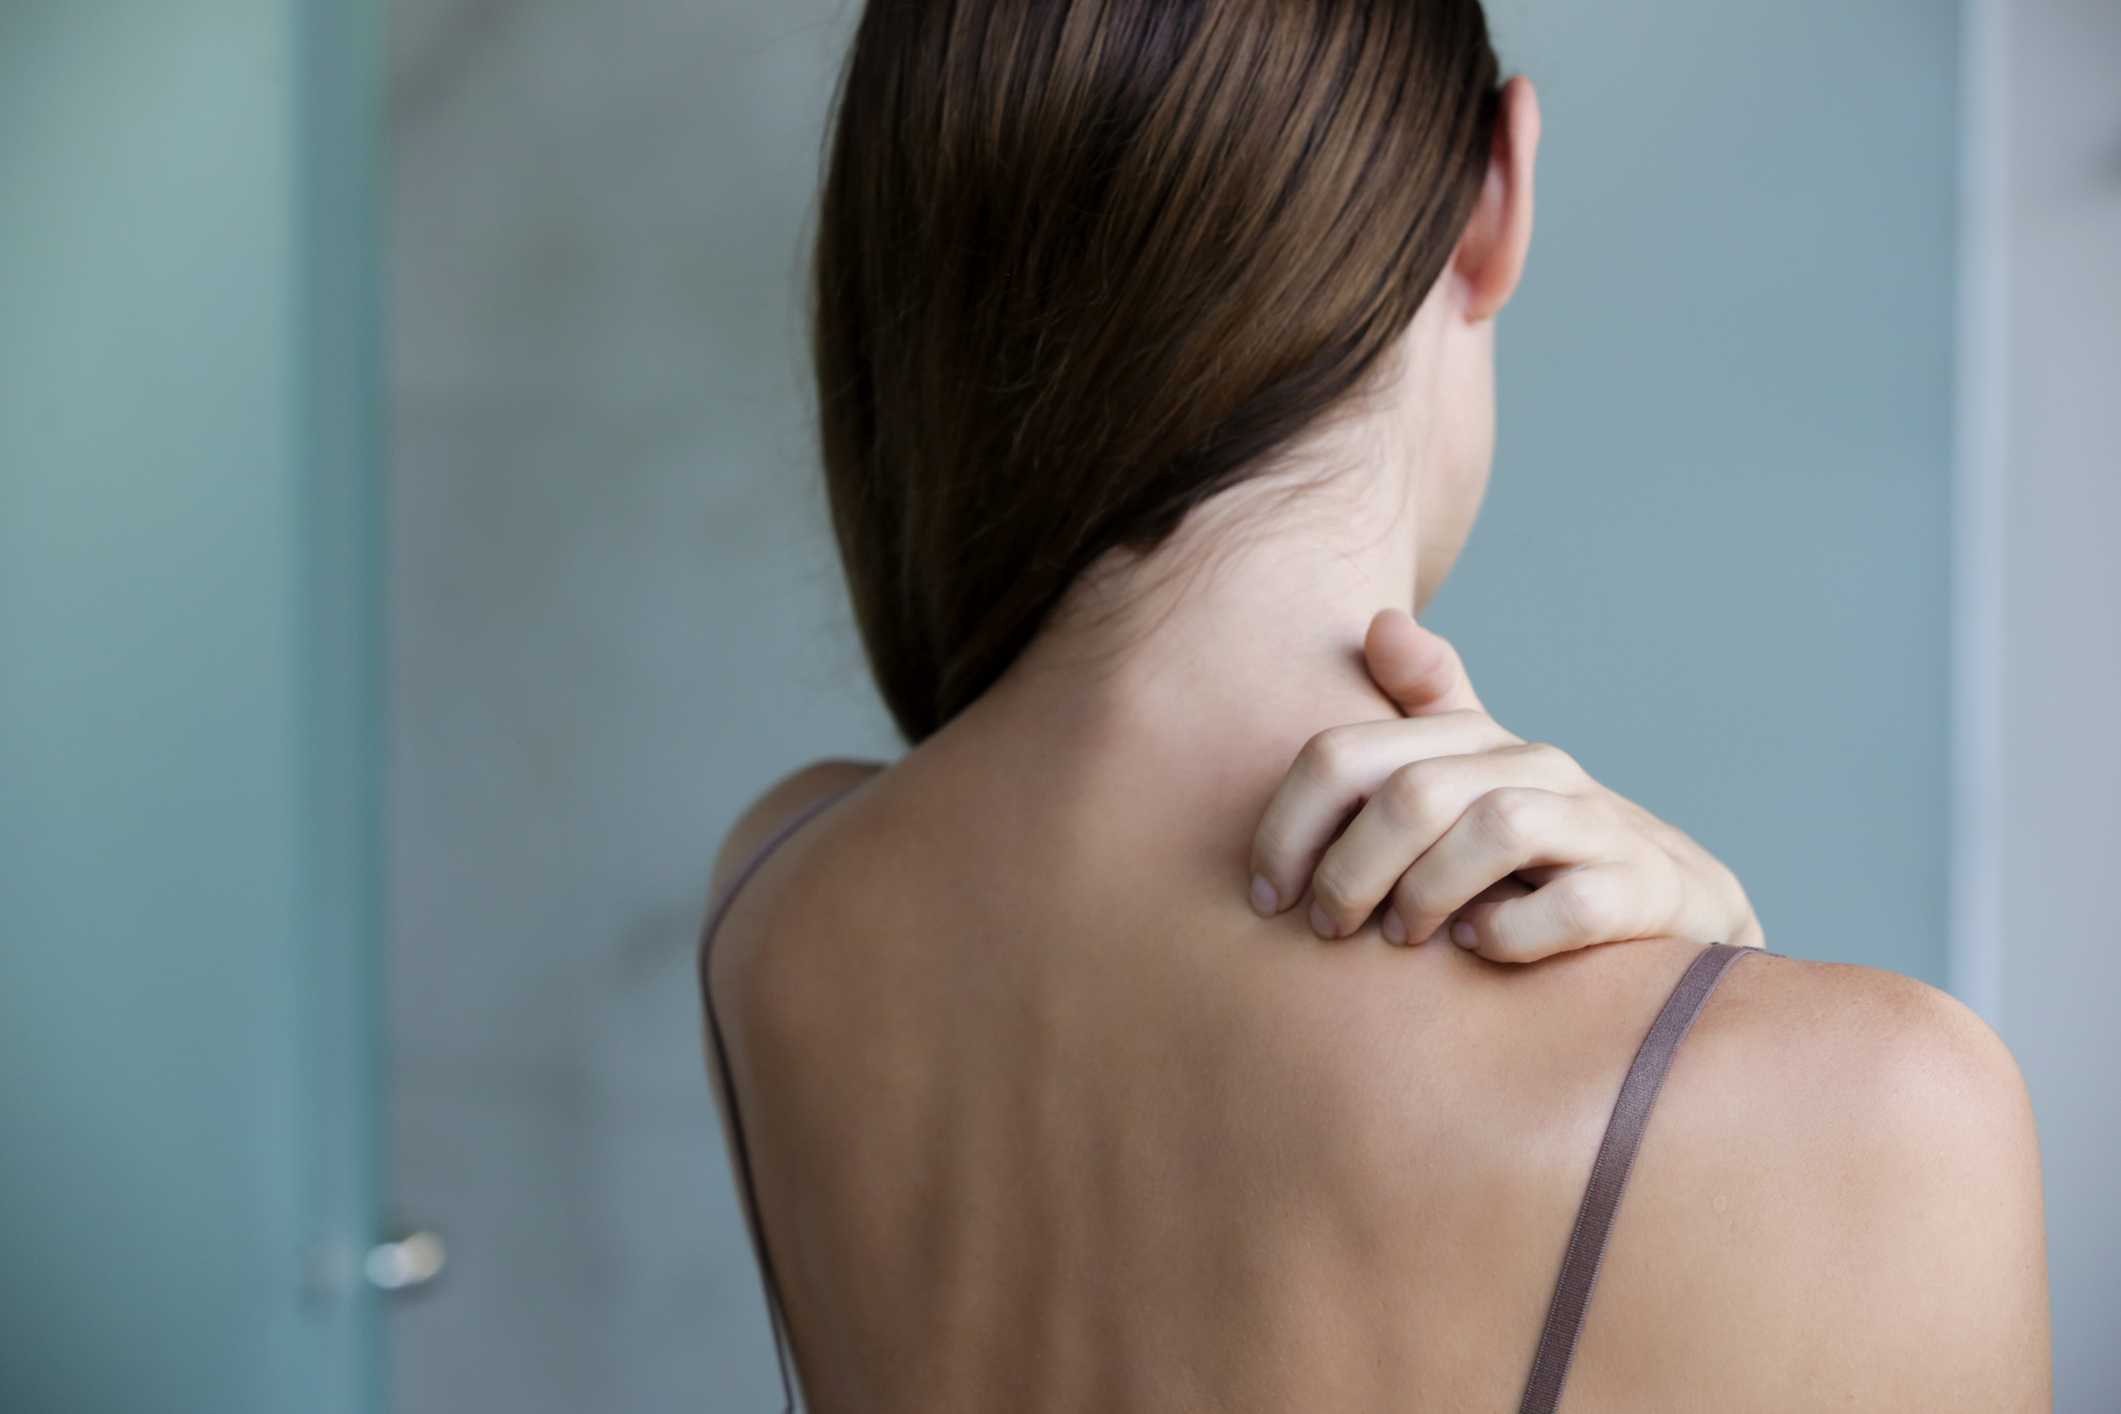 Simple diet changes that relieve skin and joint inflammation